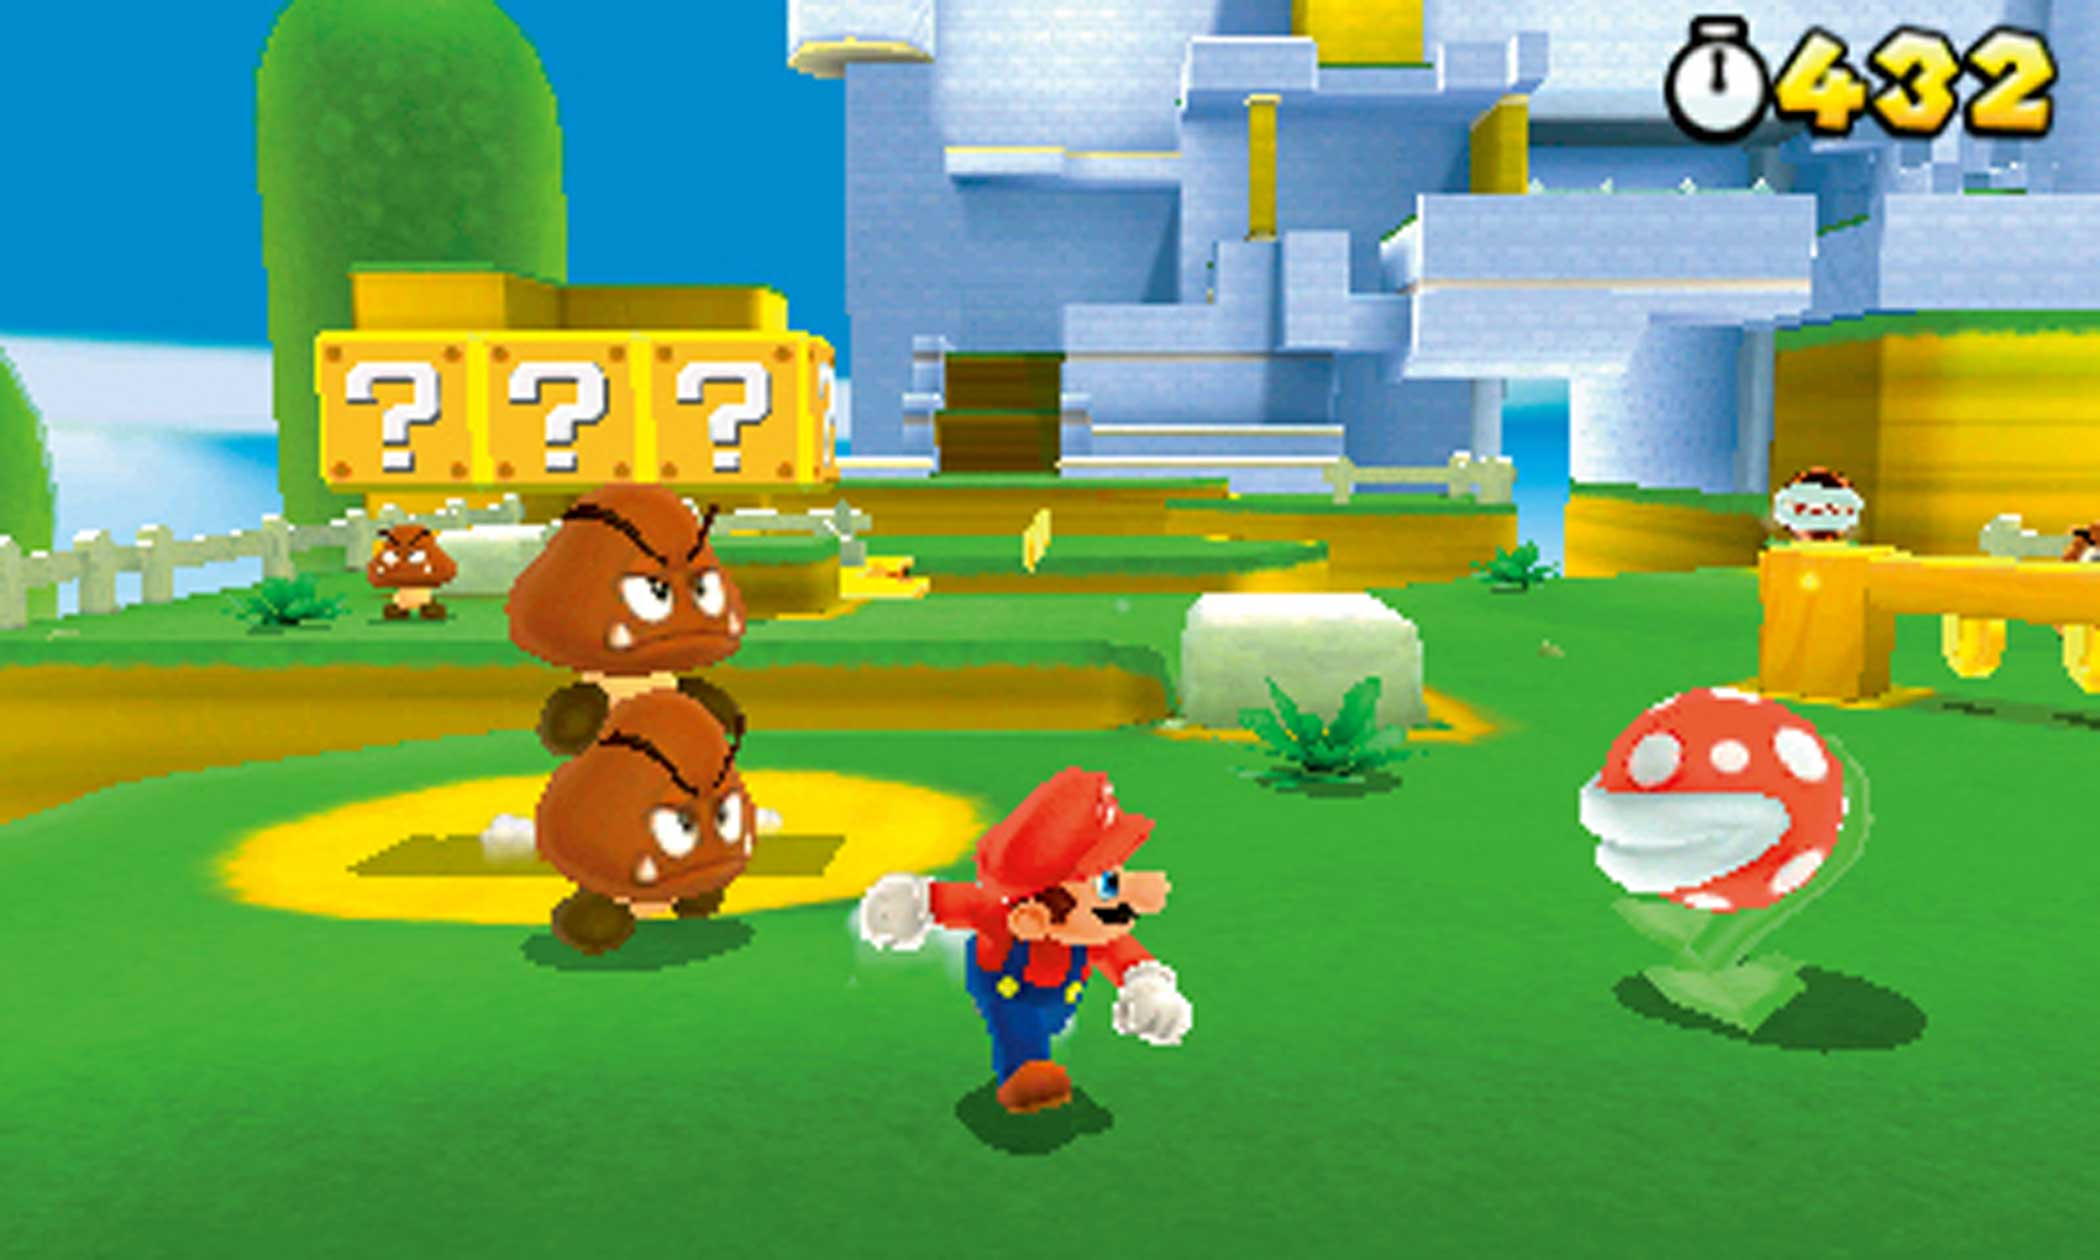 2011: Super Mario 3D Land                                                              Nintendo's 3DS had a rough, almost disastrous start, but after a hardware price cut and the arrival of this cleverly wrought, quasi-3D vamp on classic Mario gameplay tropes (it mixed 2D and 3D level design), sales soared.